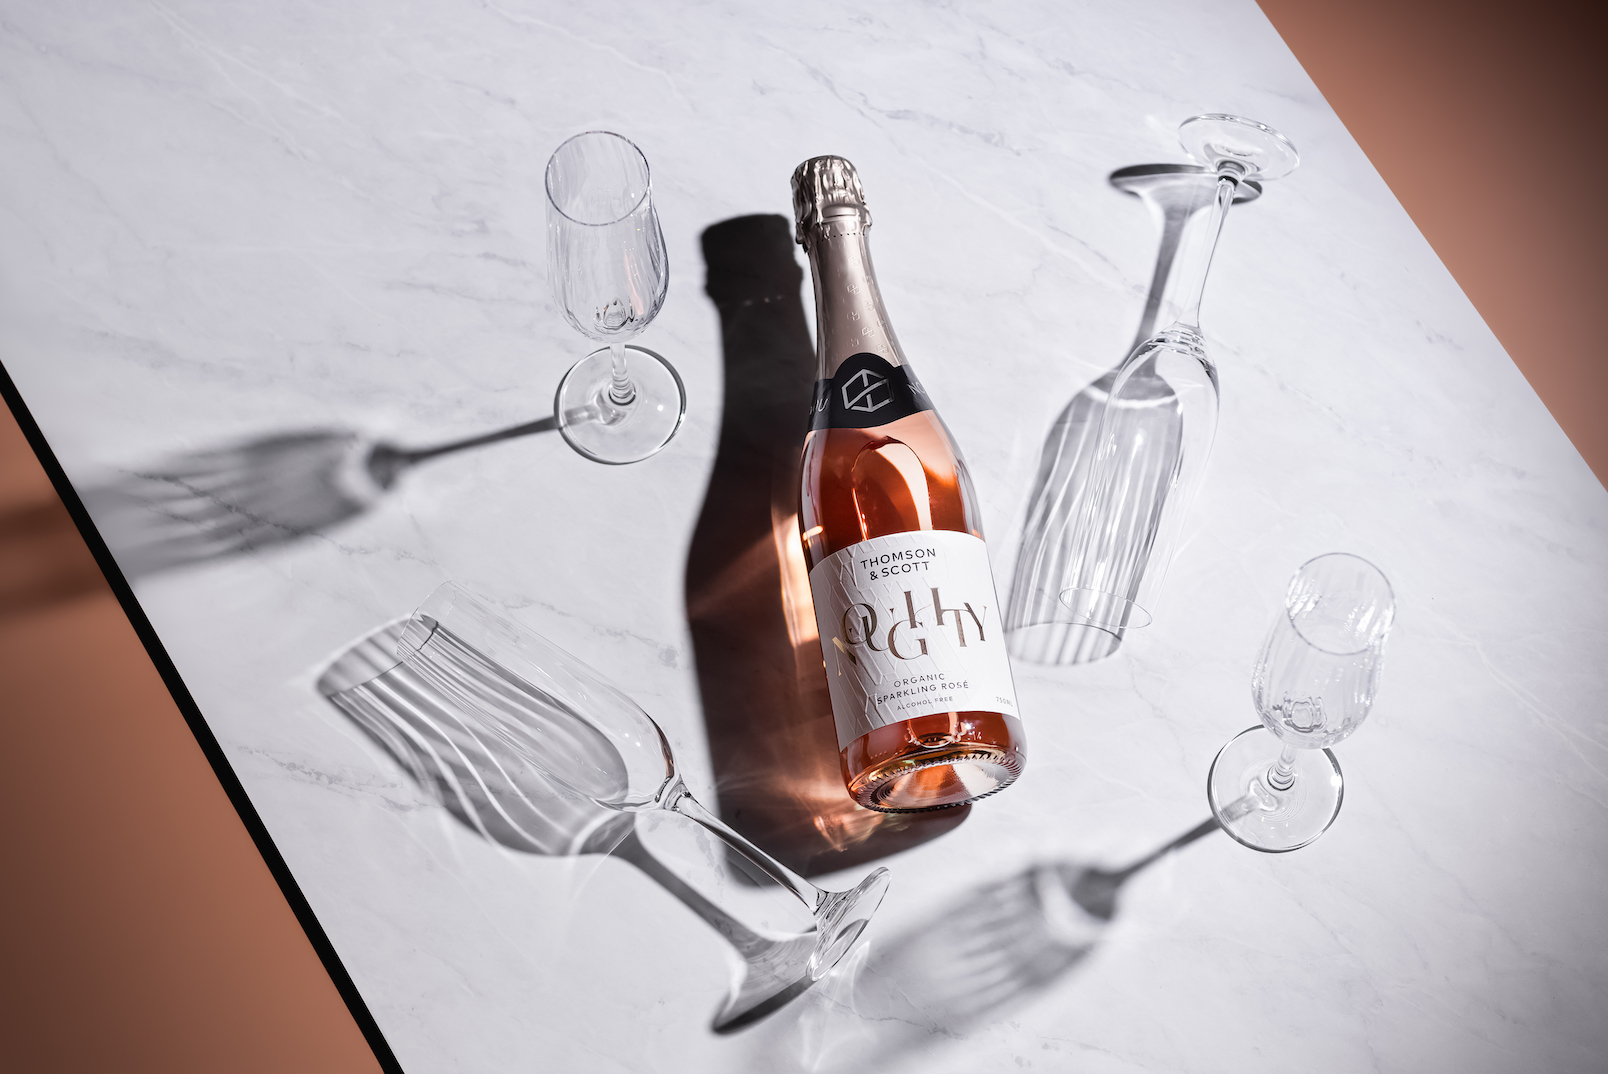 In 2019 British entrepreneur Amanda Thomson launched NOUGHTY Chardonnay, the first alcohol-free organic, vegan sparkling chardonnay with almost half the sugar content of traditional alcohol-free sparkling wines, carving out a new segment of the drinks market. This spring she is revolutionising the drinks industry again to produce Noughty Rosé alcohol-free organic, vegan sparkling.